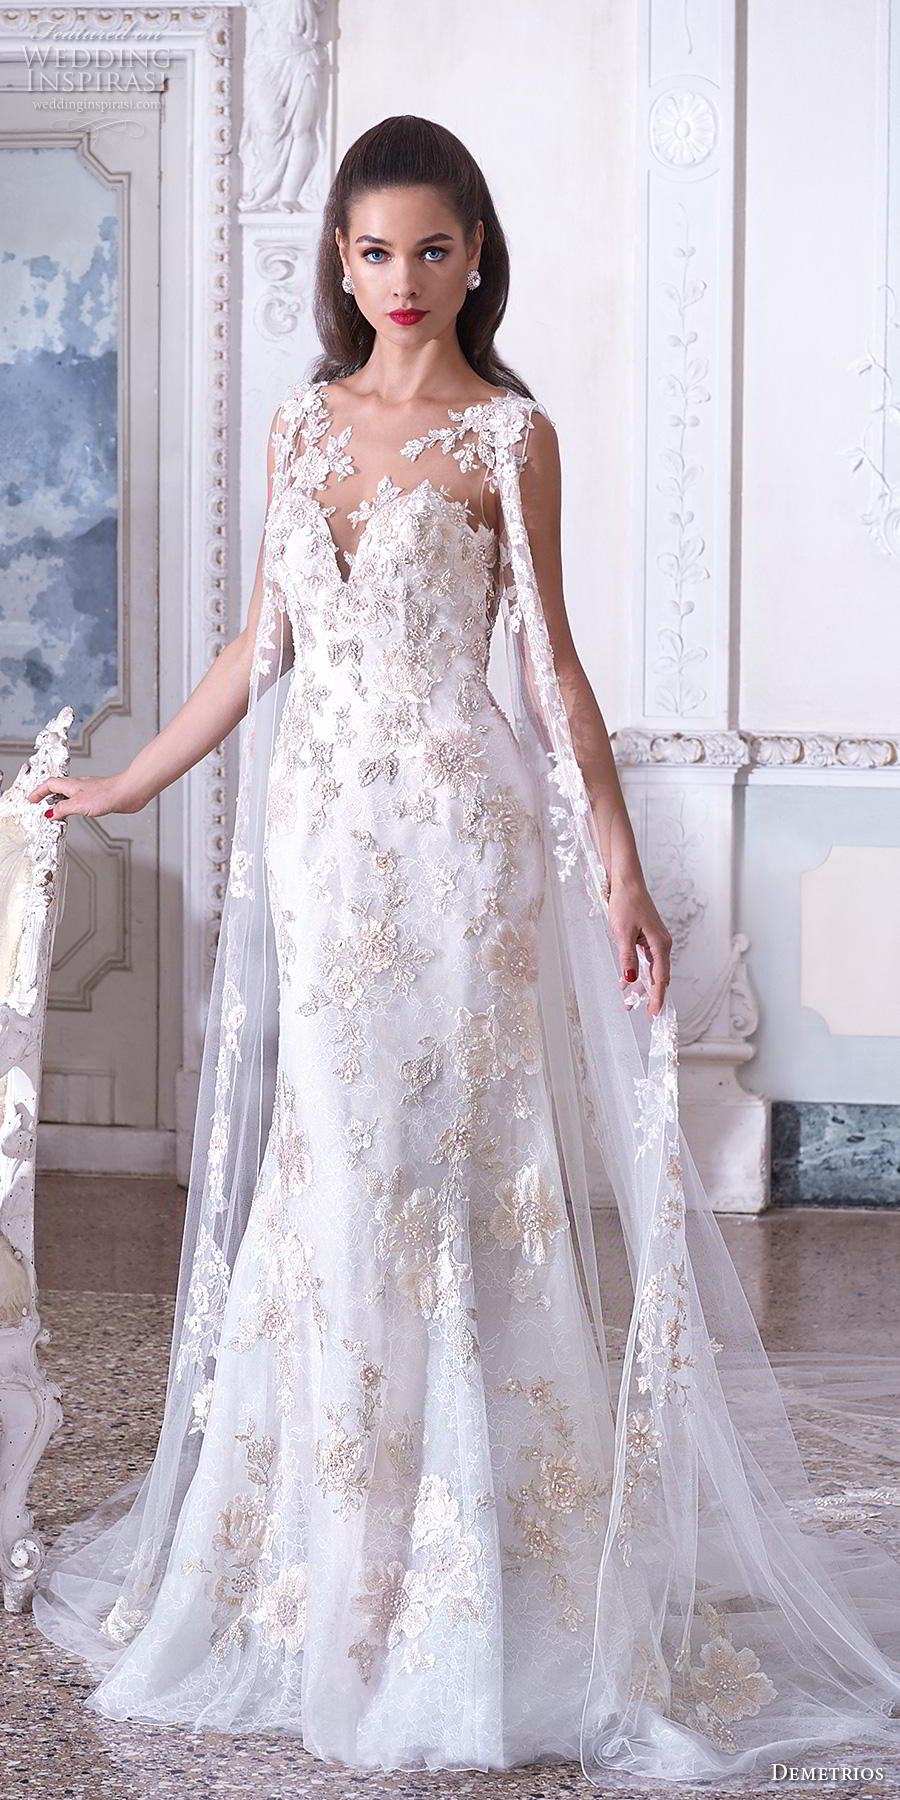 demetrios 2019 bridal sleeveless illusion bateau deep sweetheart neckline full embellishment glamorous elegant fit and flare trumpet wedding dress with cape sheer button back sweep train (3) mv